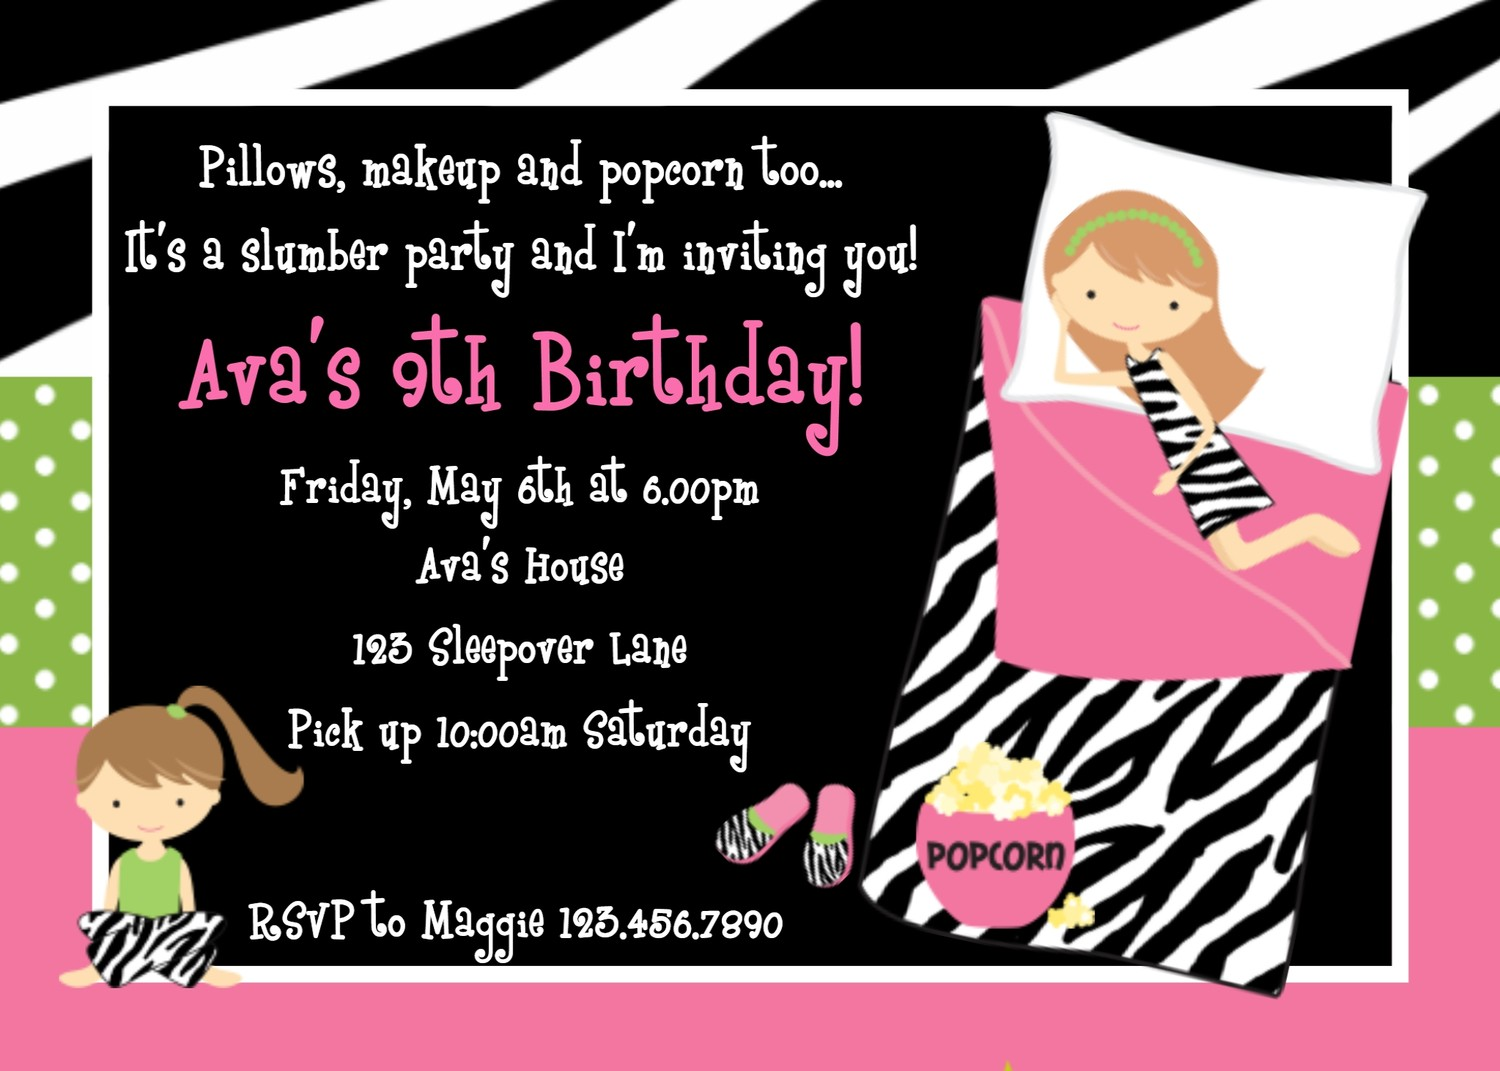 Slumber Party Birthday Invitations Images Invitation Design Ideas – Printable Birthday Party Invitation Cards